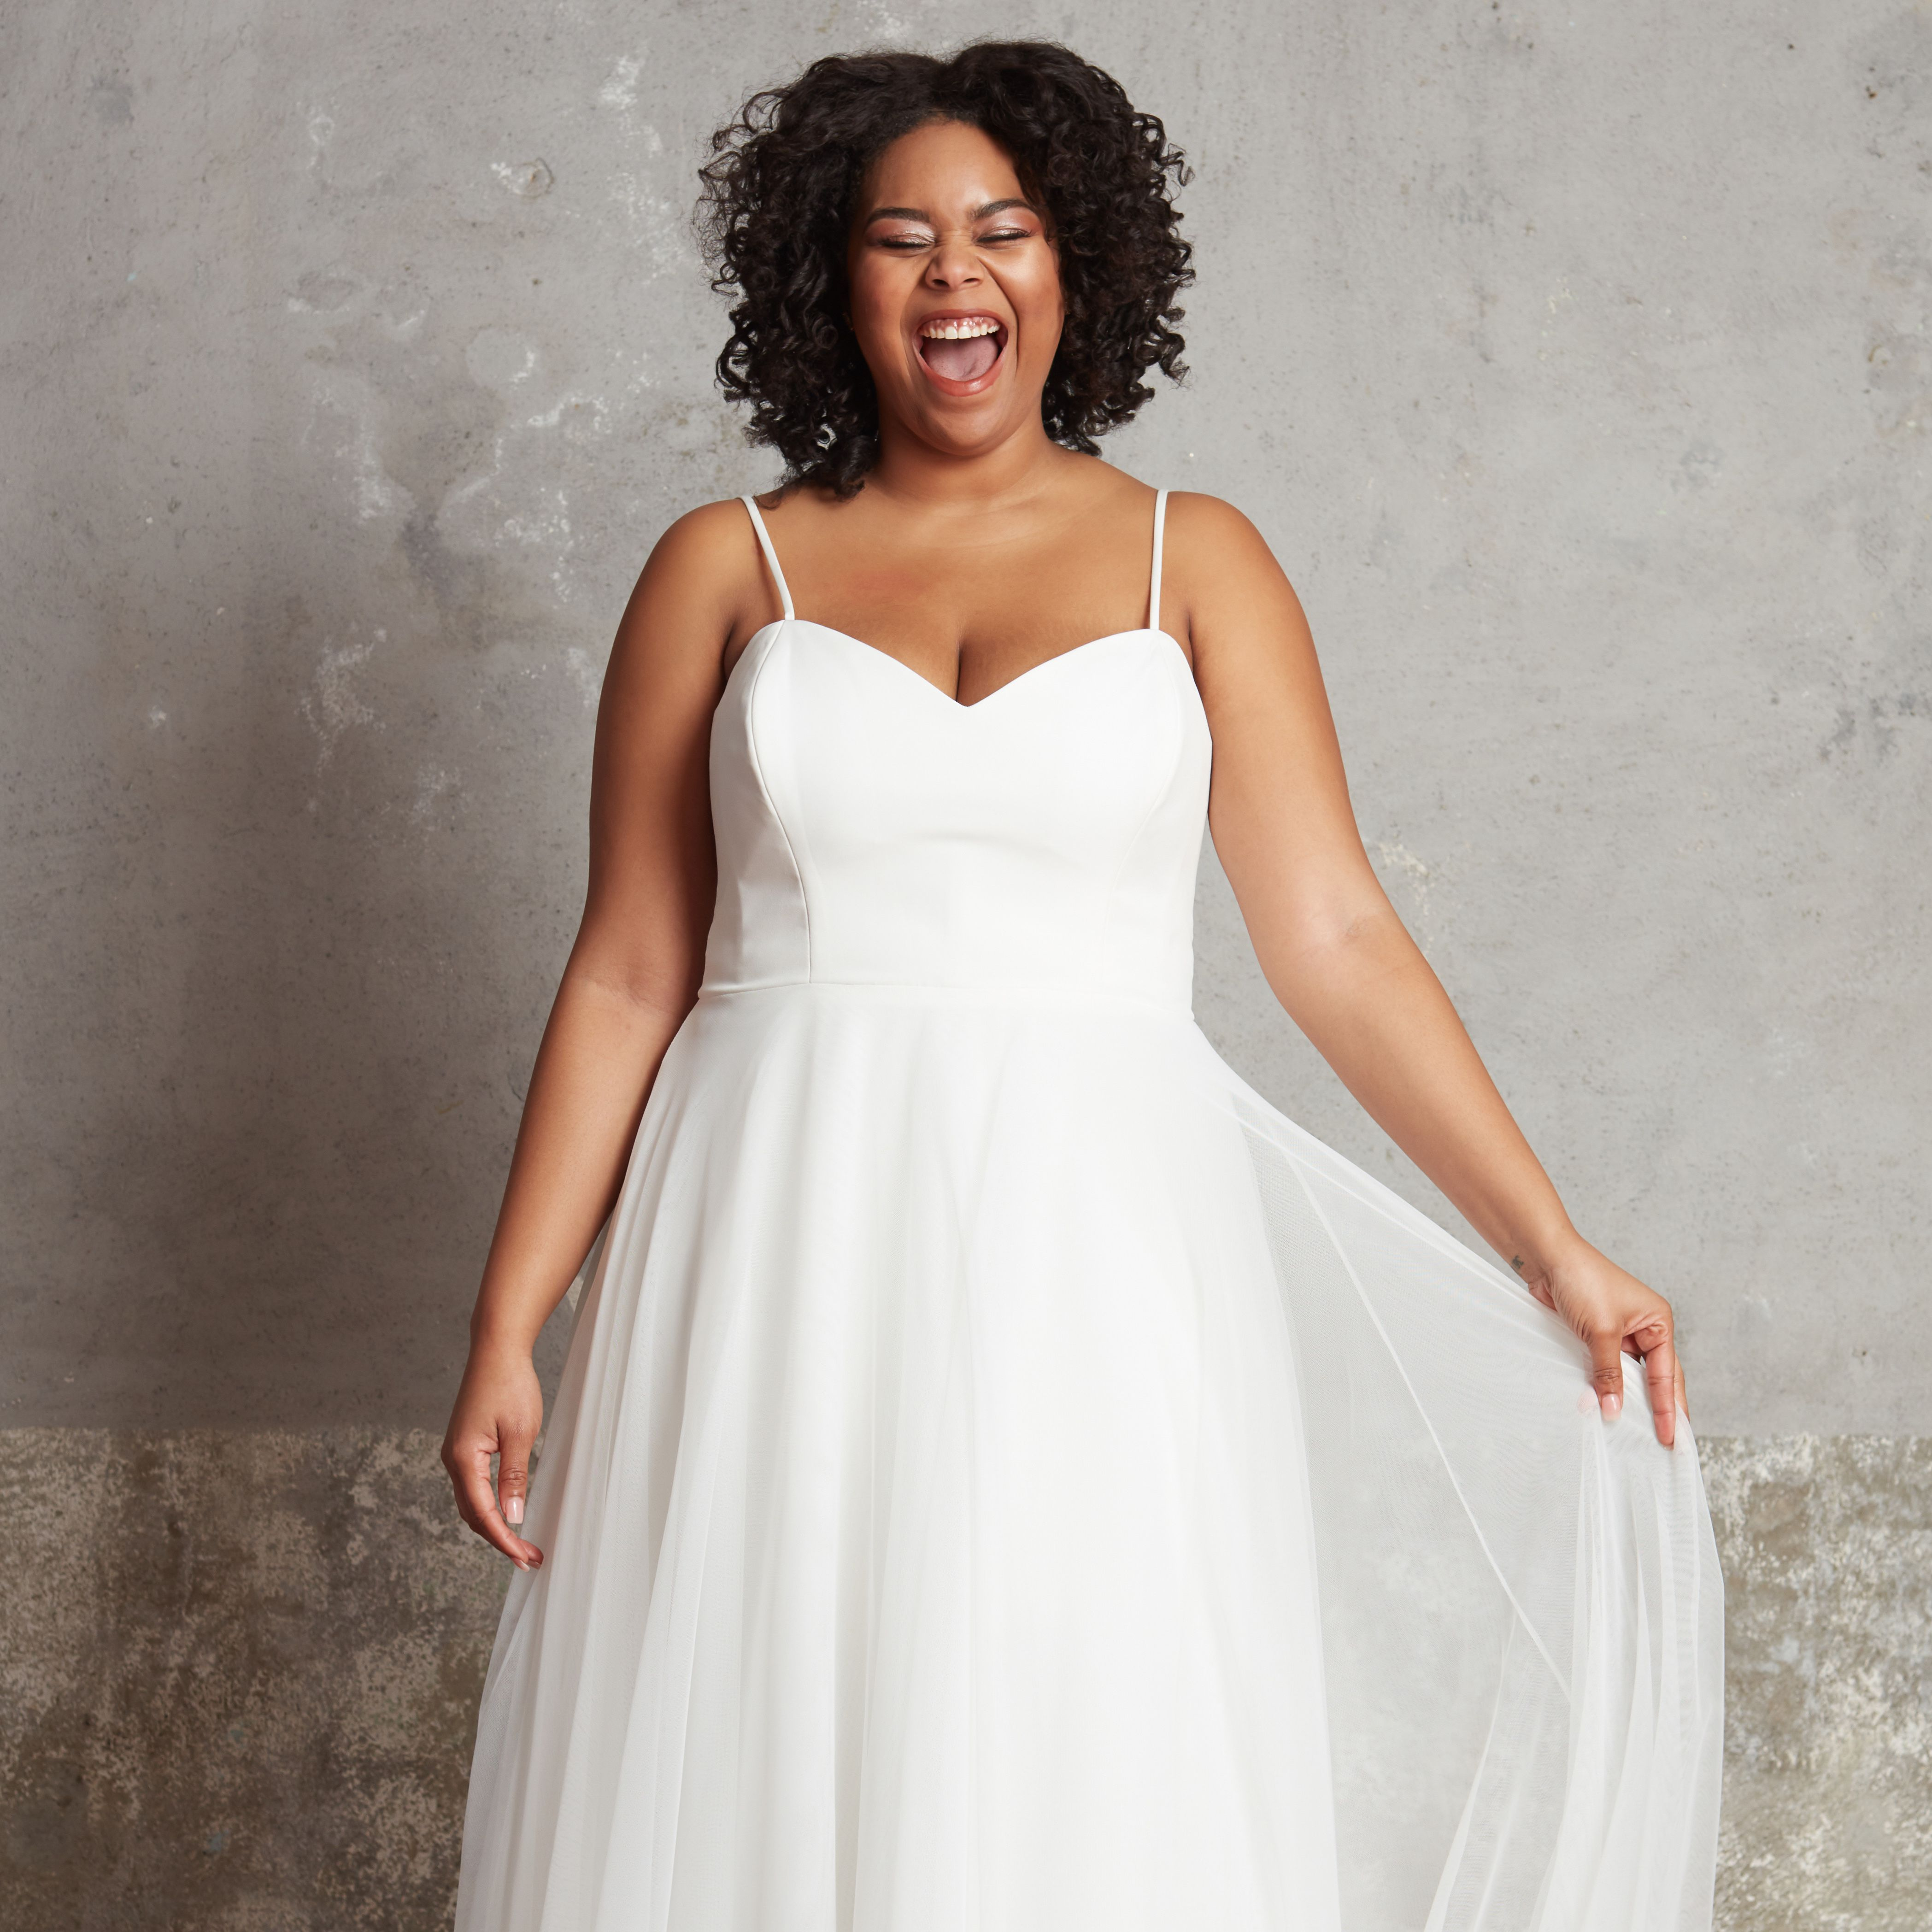 Two Fashion Brands Are Redefining the Plus-Size Bridal Shopping Experience